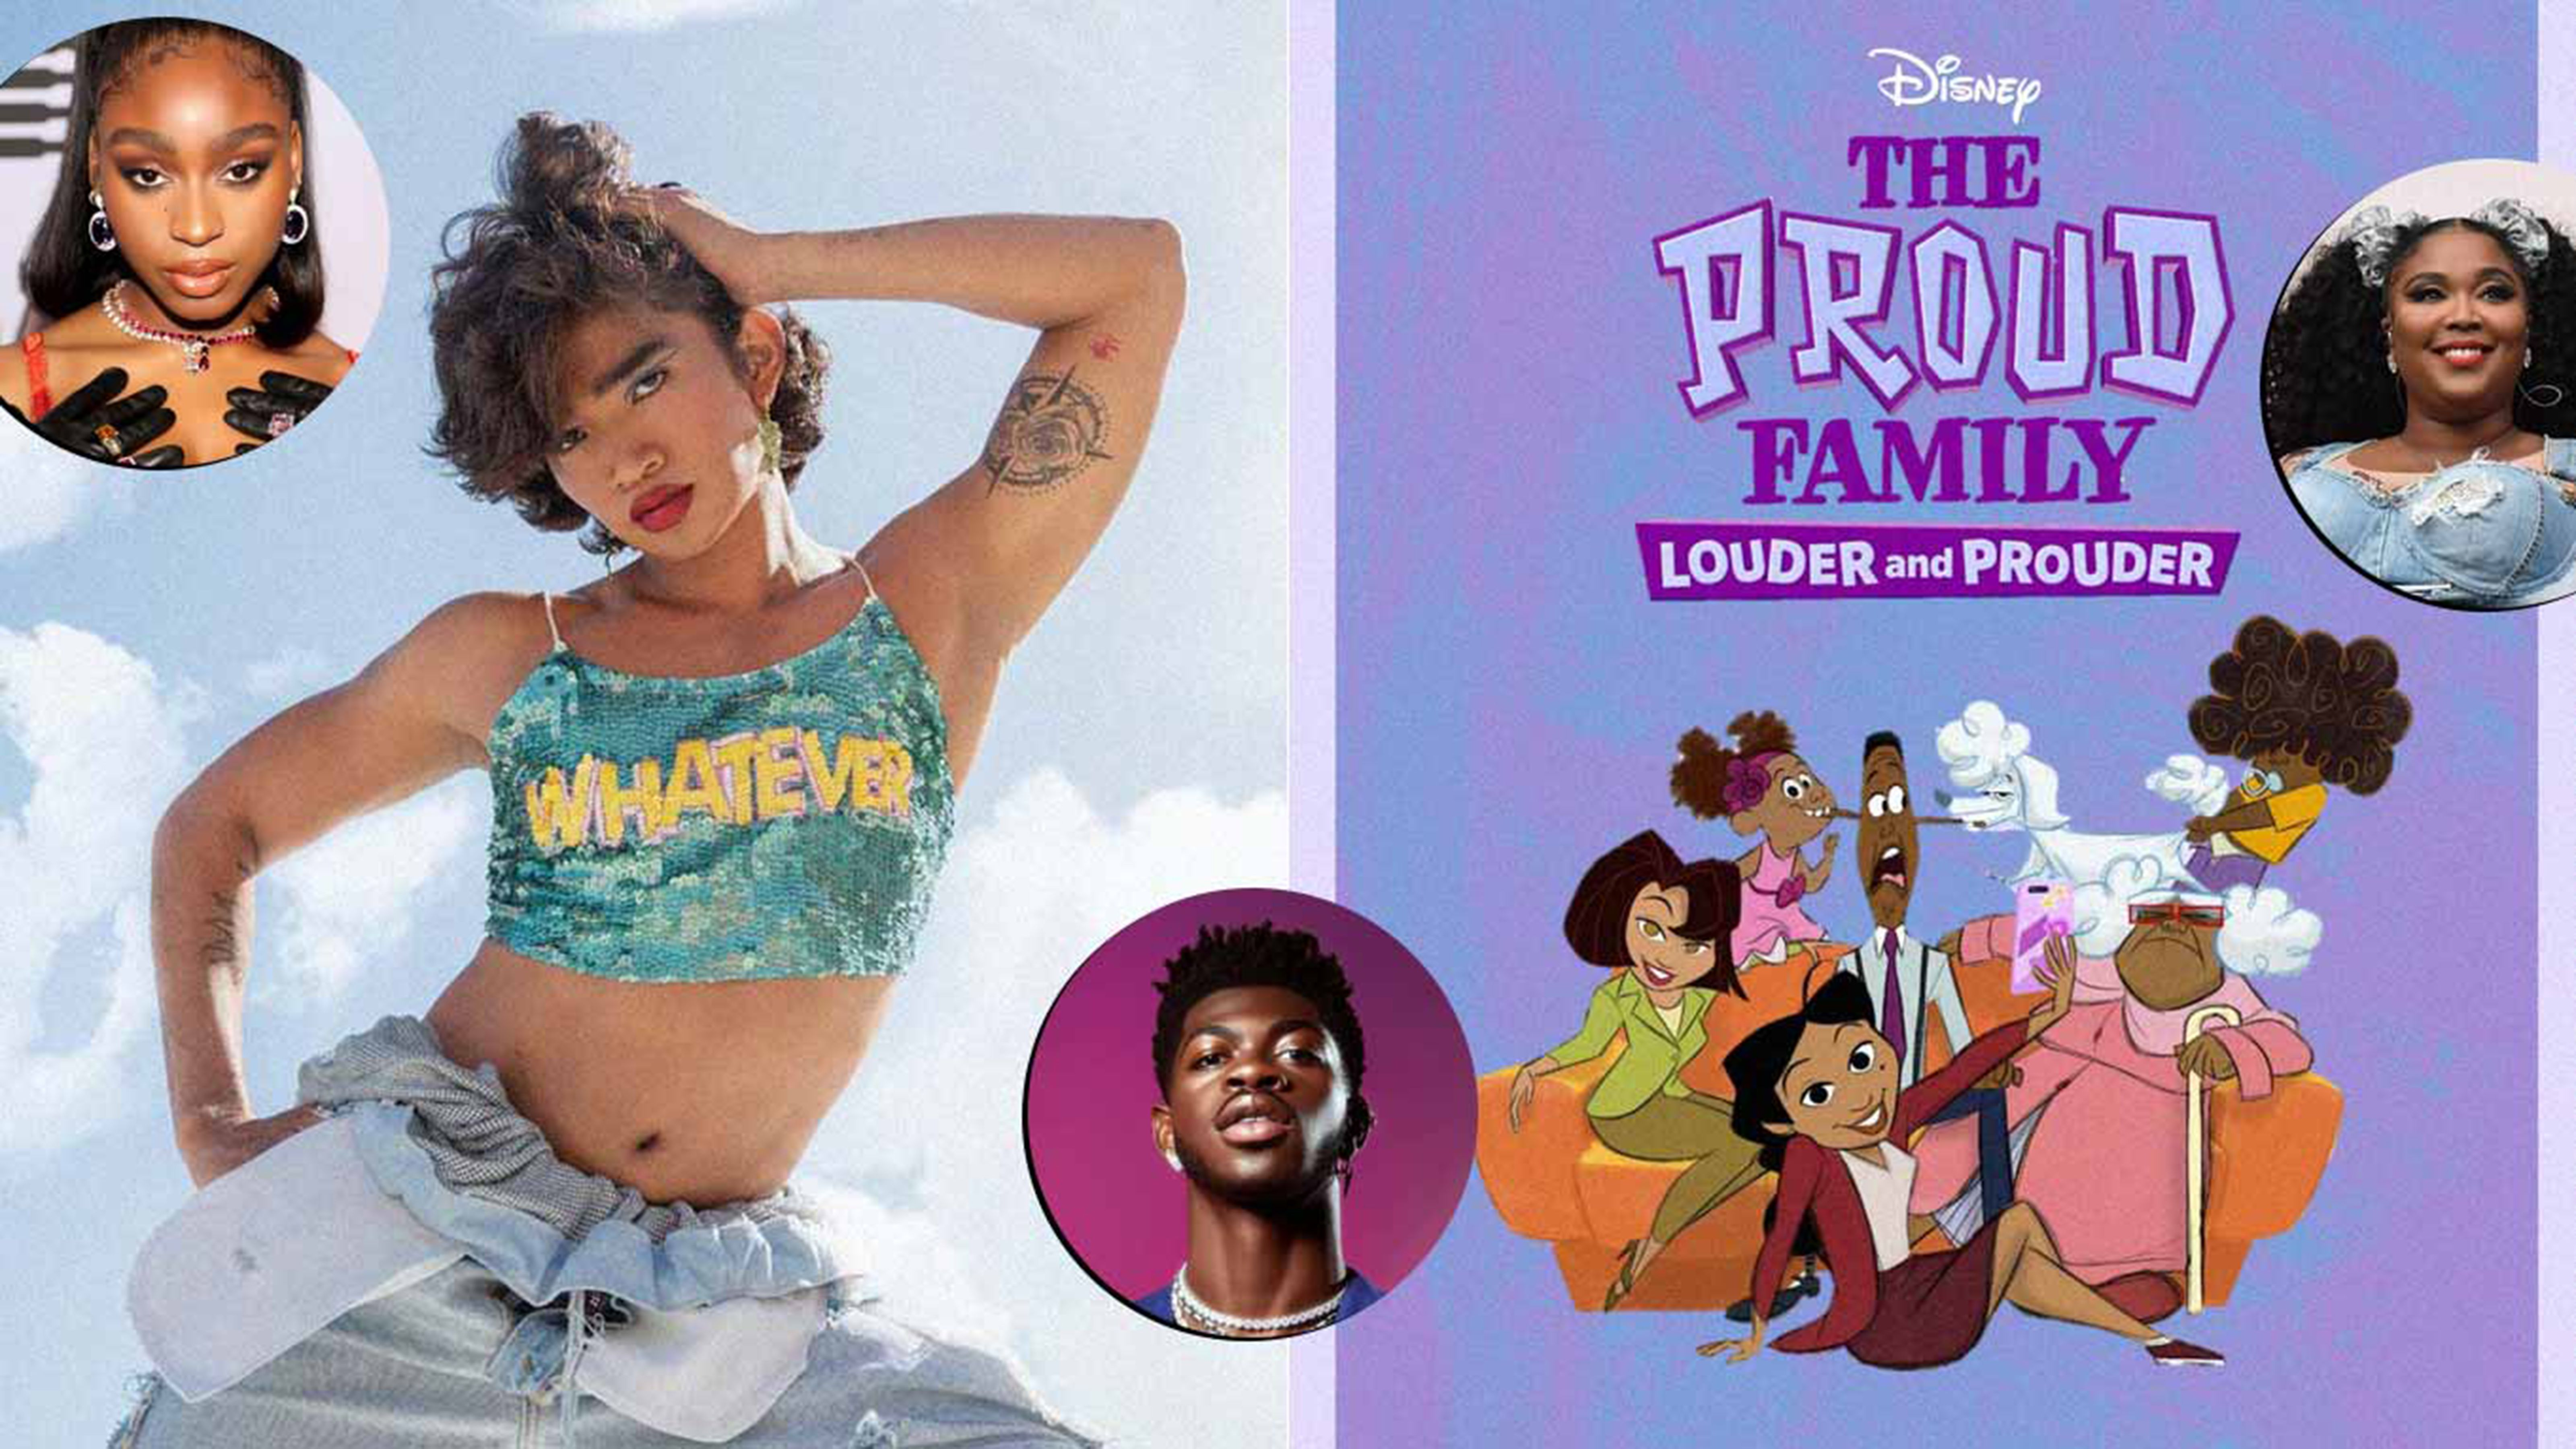 Bretman Rock to star in Disney's The Proud Family Louder and Prouder